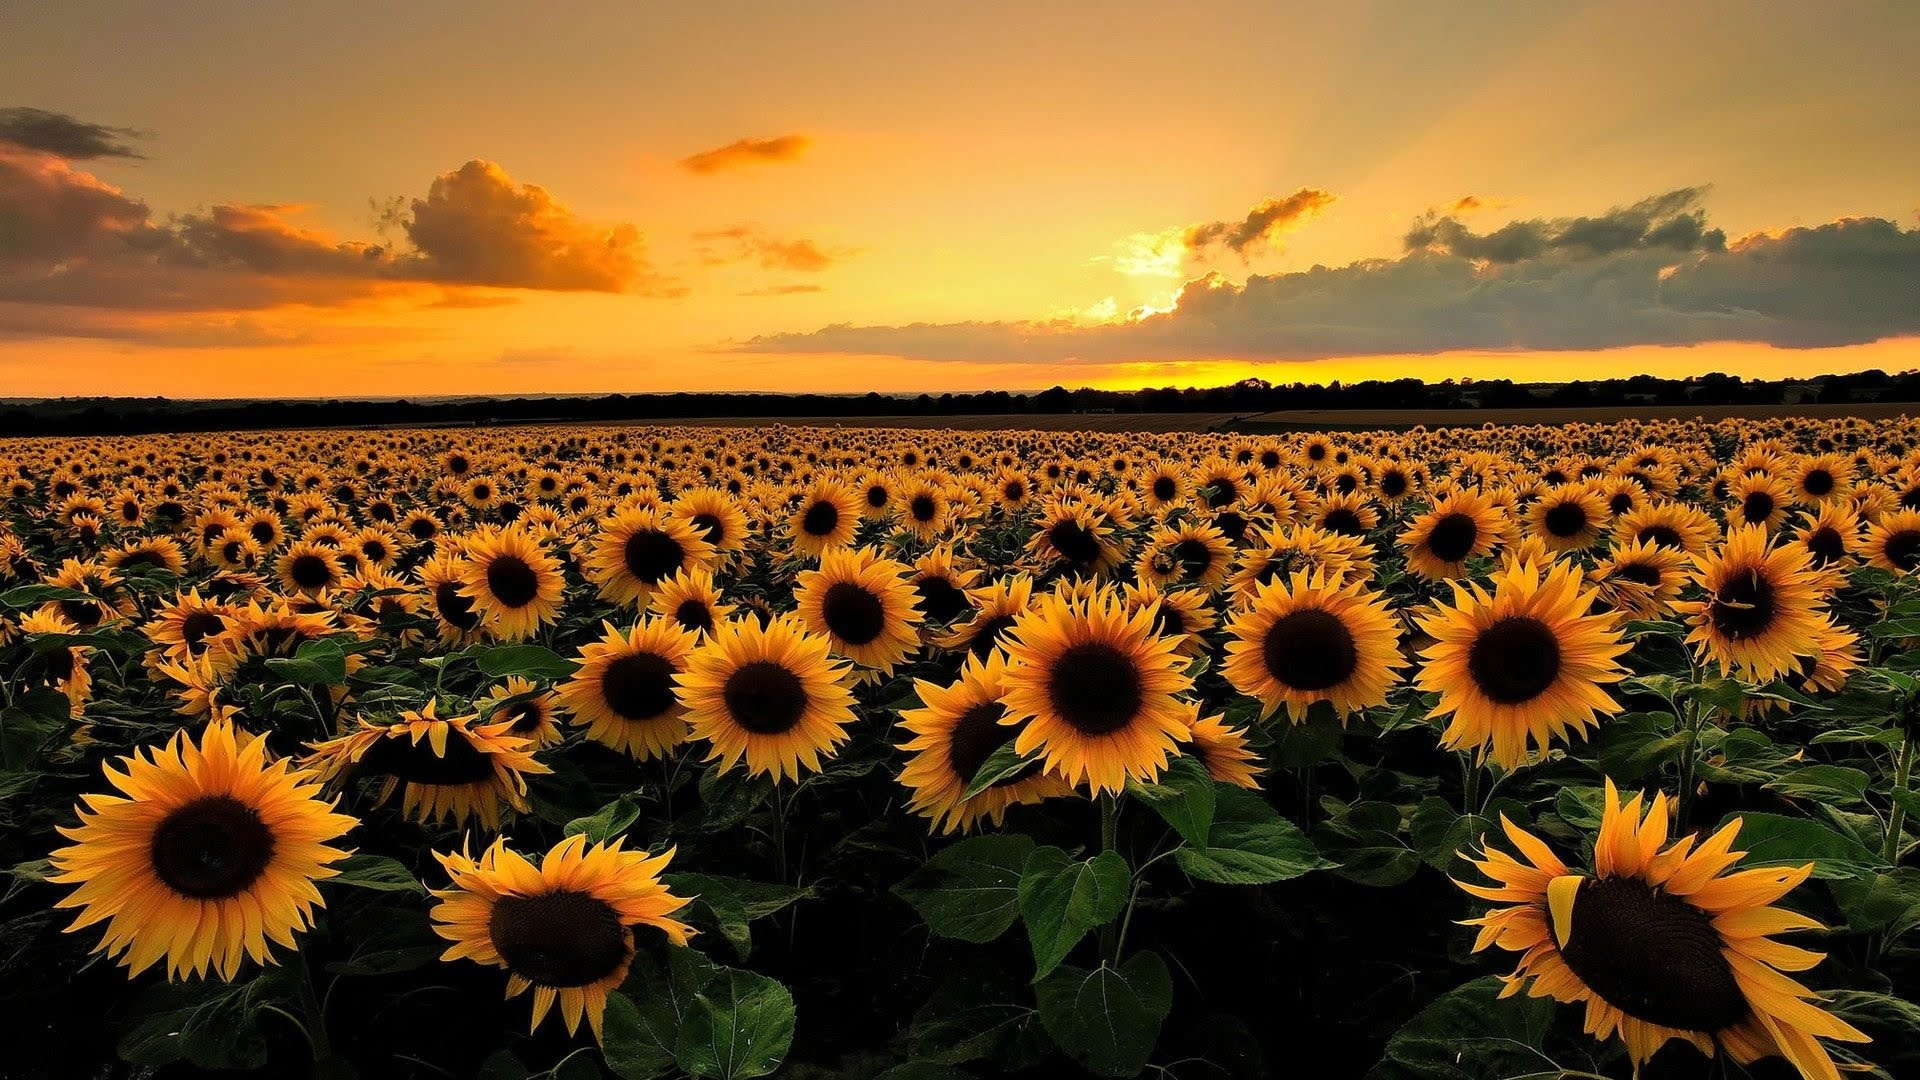 The largest sunflower field - Tuscany (Italy) - YouTube